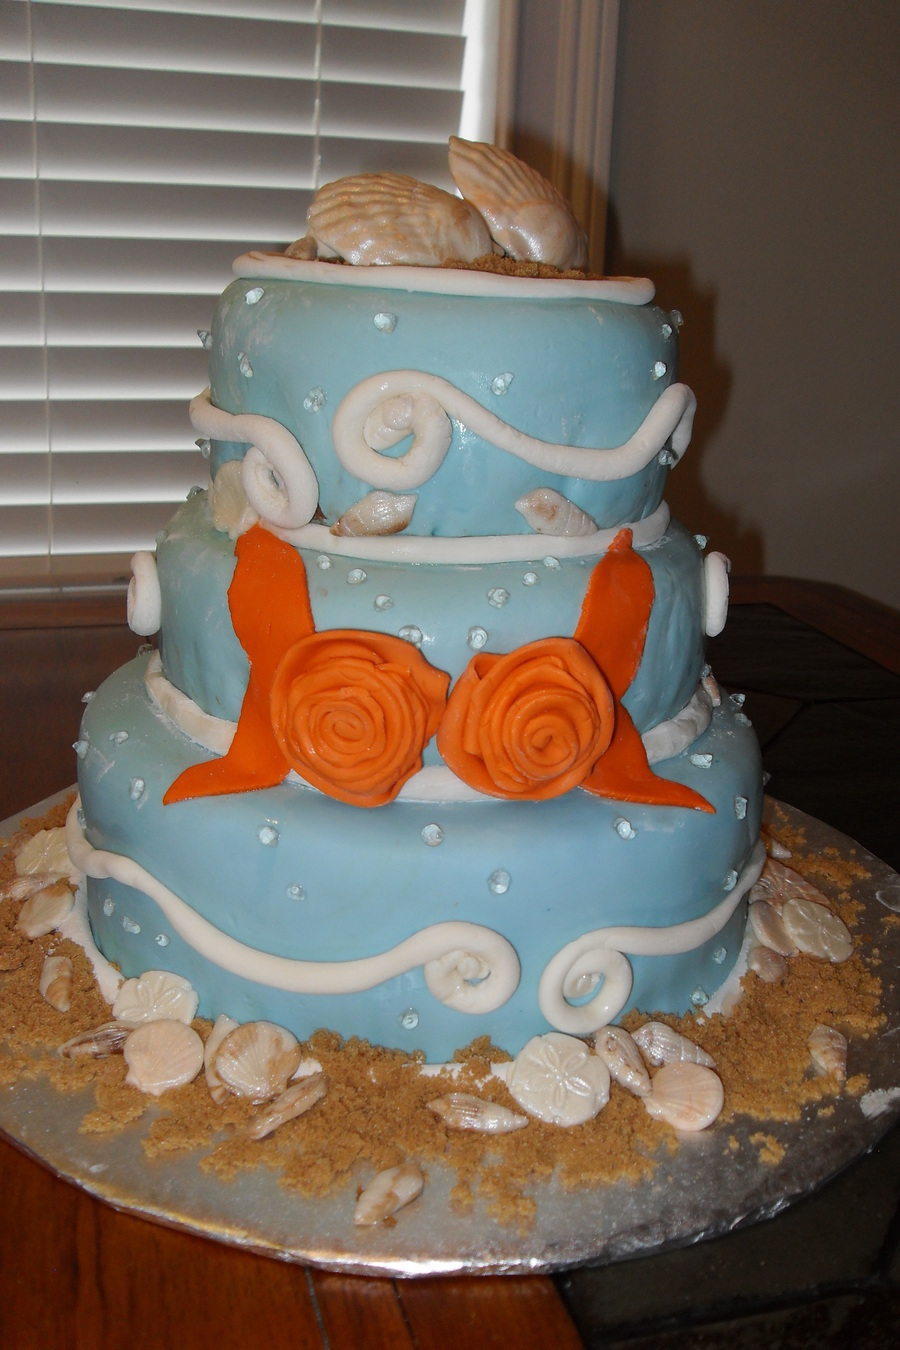 Sunset Wedding On The Beach At Destin Florida on Cake Central